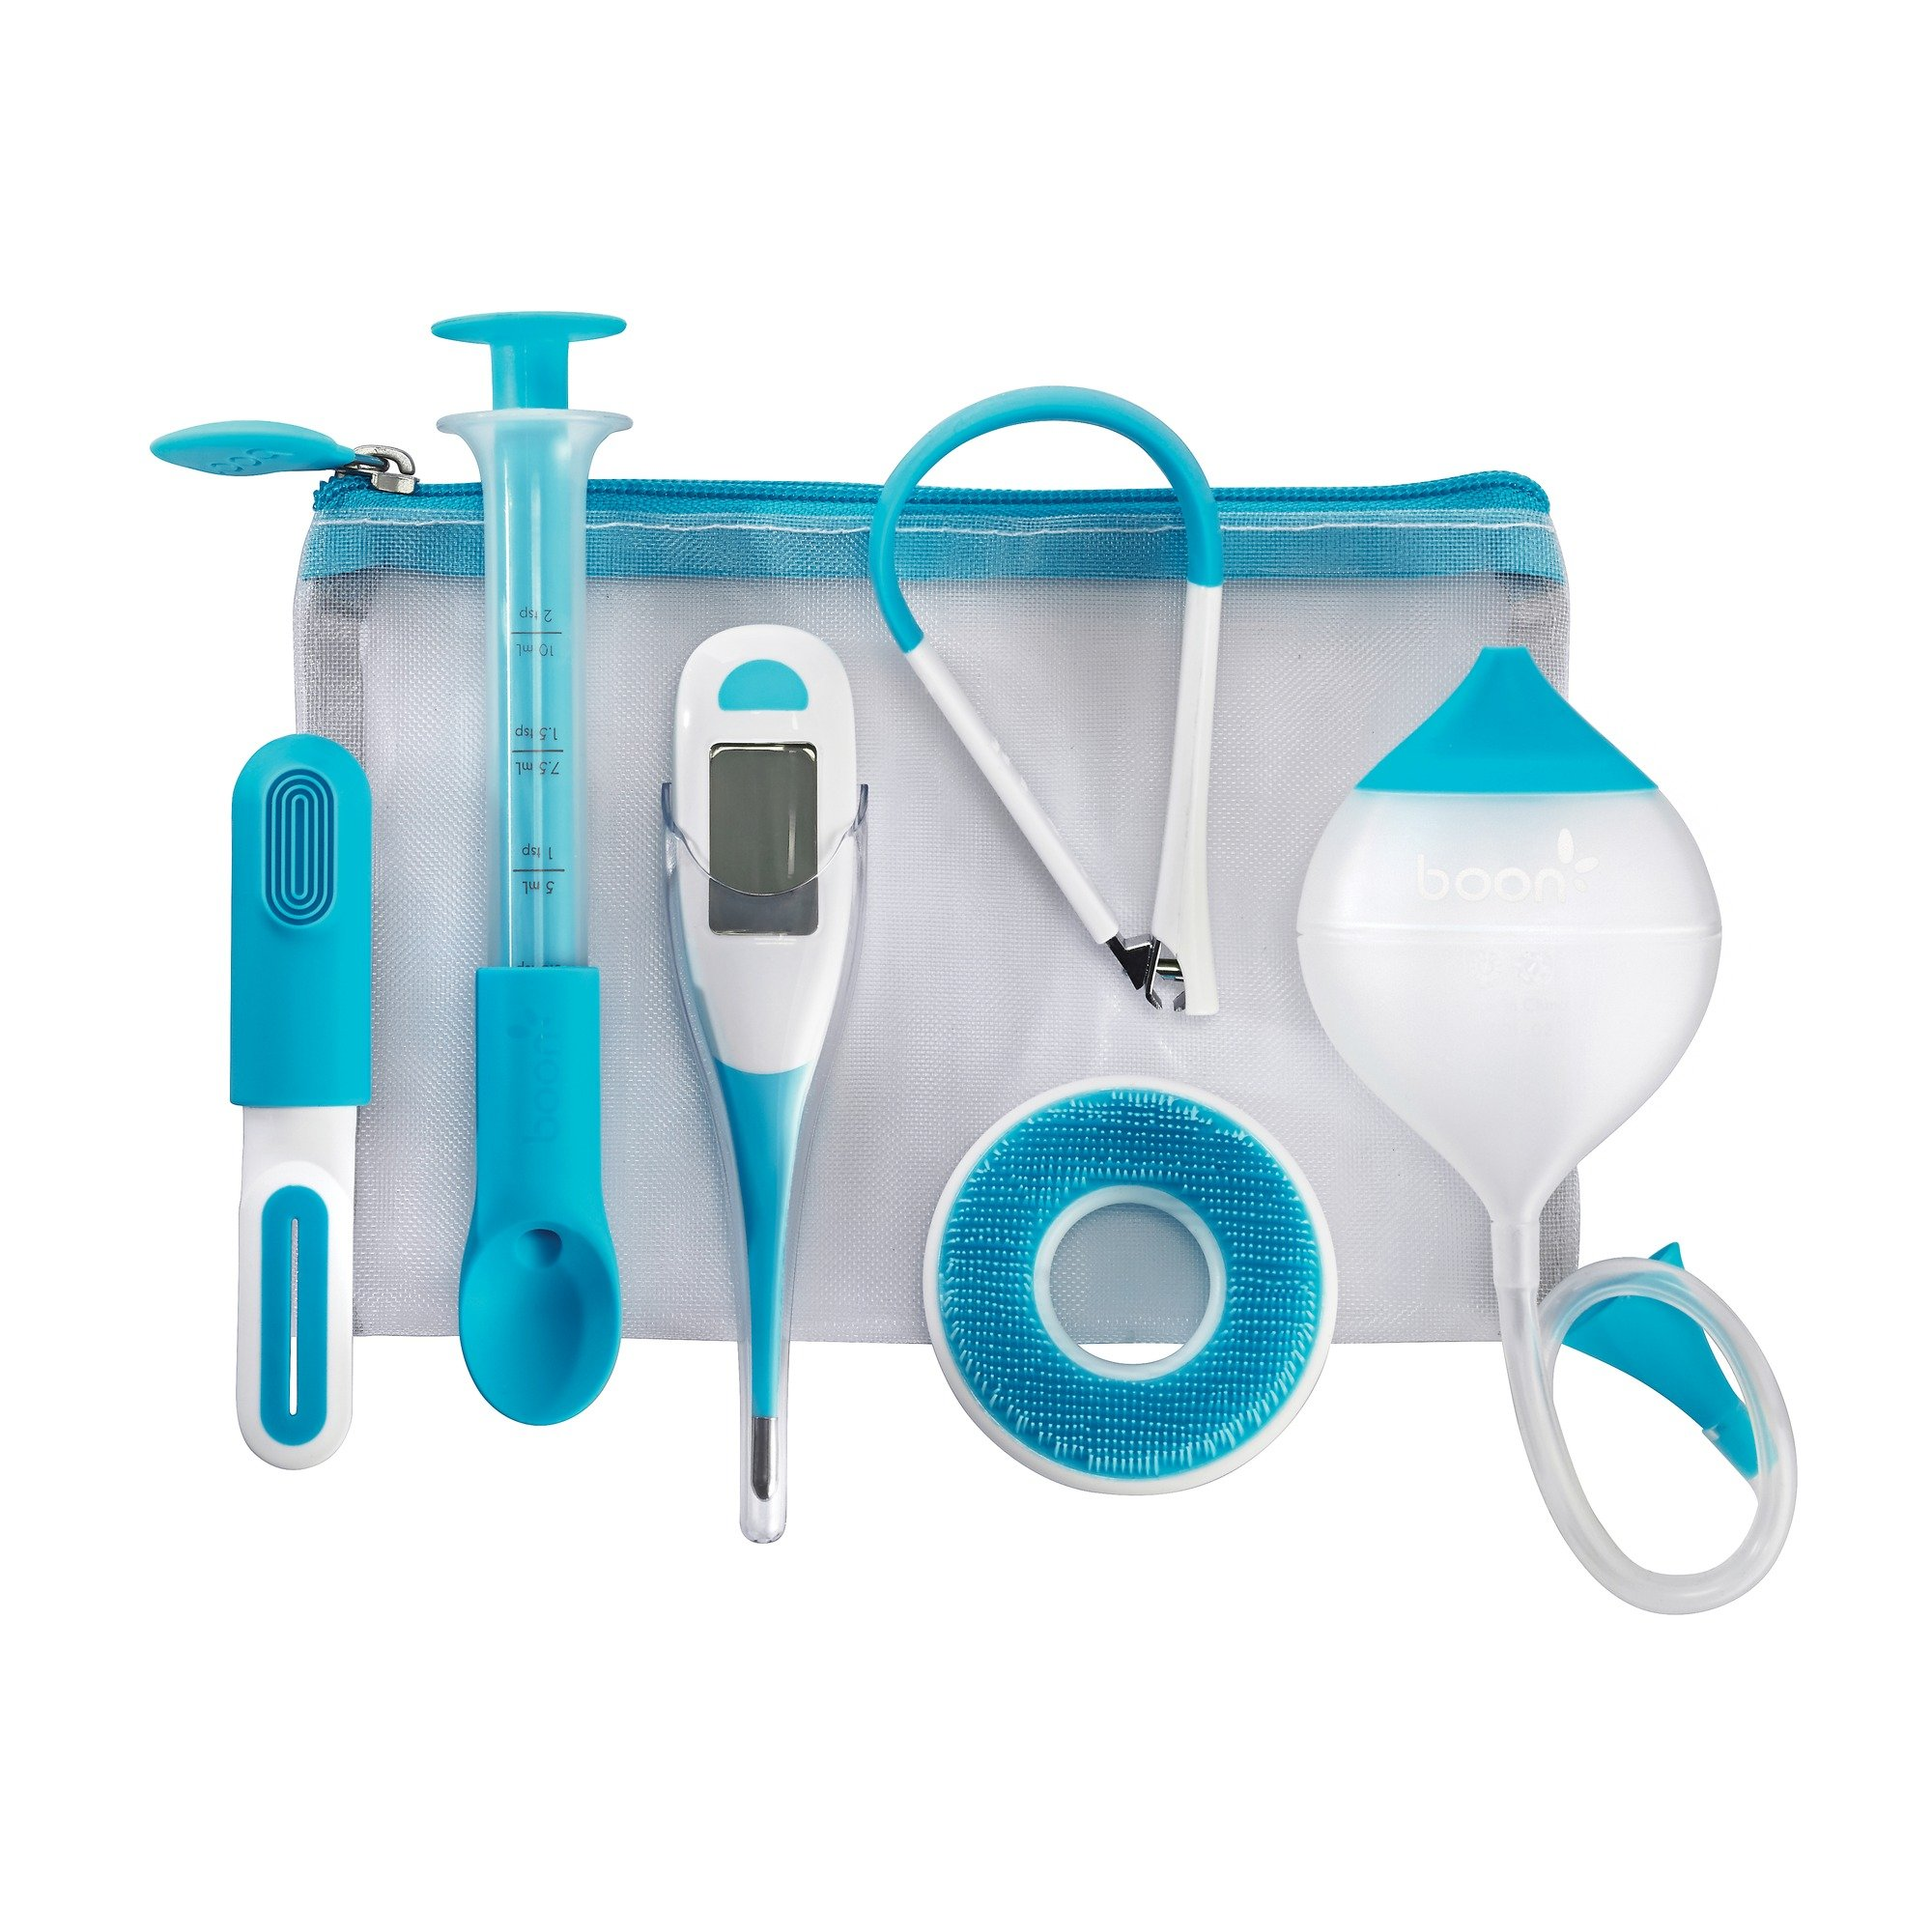 Boon Care Health and Grooming Kit, Blue, White by Boon